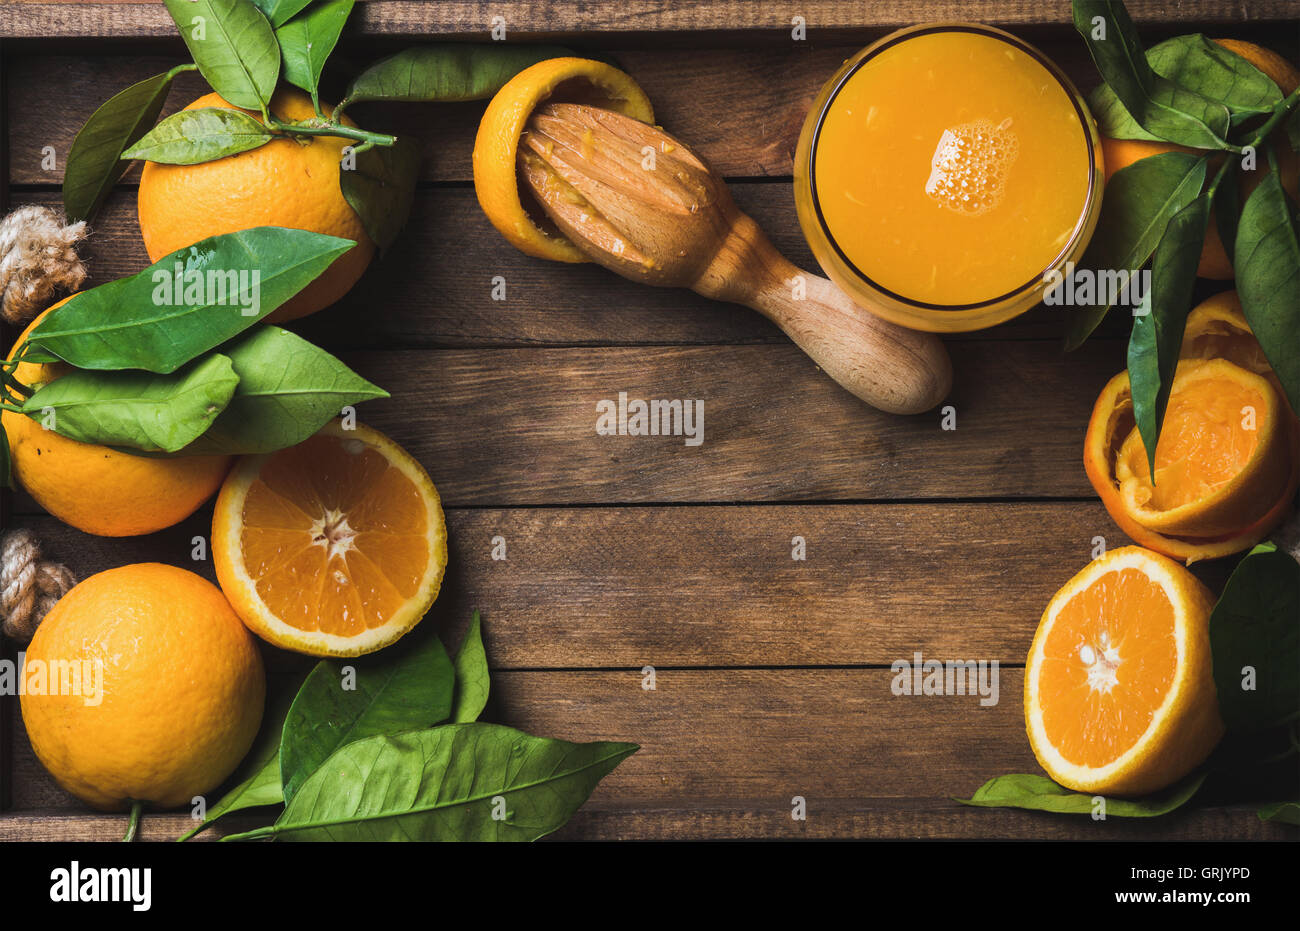 Glass of freshly squeezed juice and fresh oranges - Stock Image